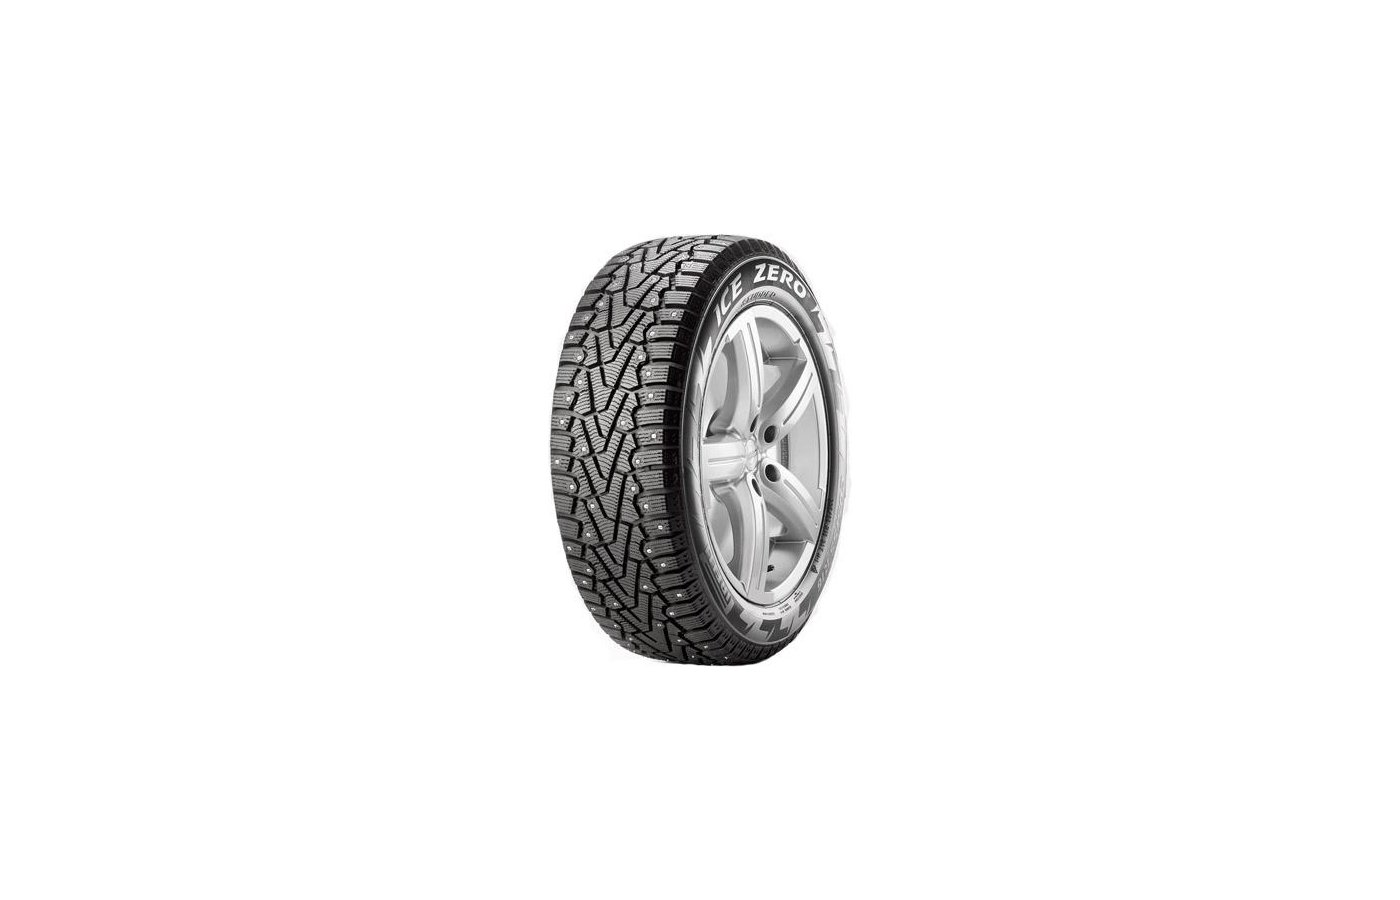 Шина Pirelli Winter Ice Zero 185/70 R14 TL 88T шип